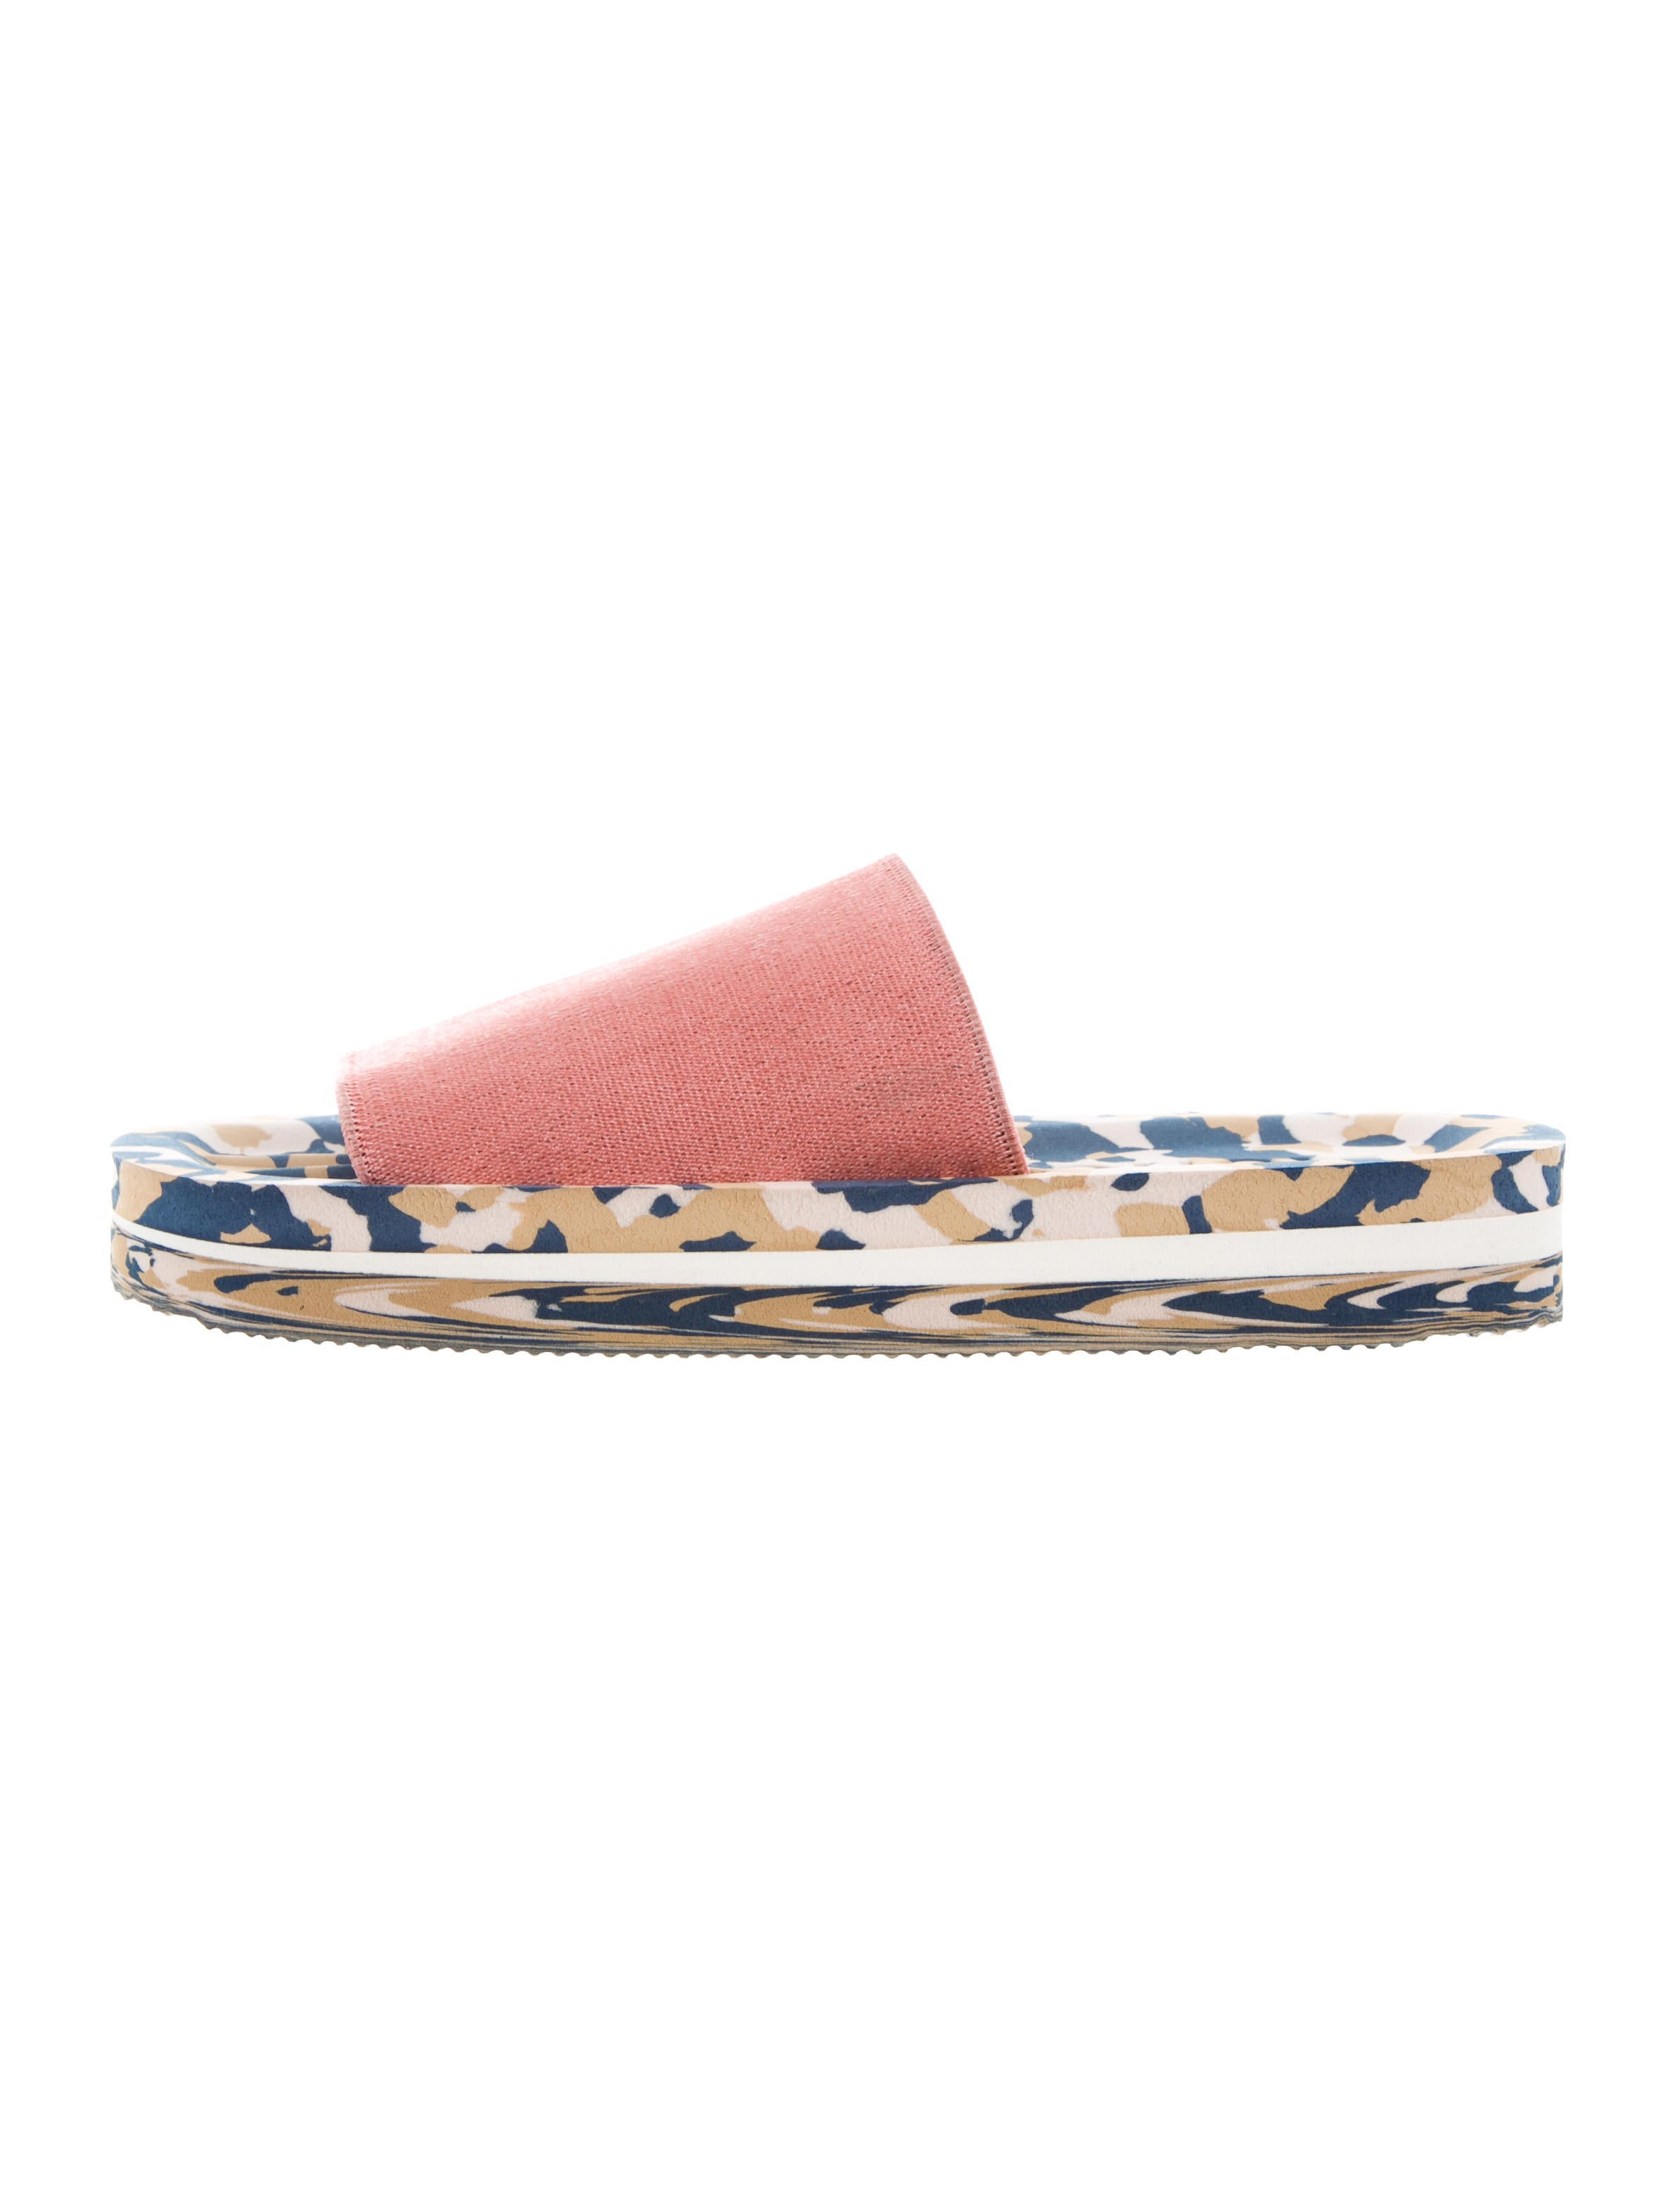 clearance pay with visa discounts Acne Studios Woven Slide Sandals for cheap sale online with mastercard cheap online visa payment cheap online PBMvjhKp